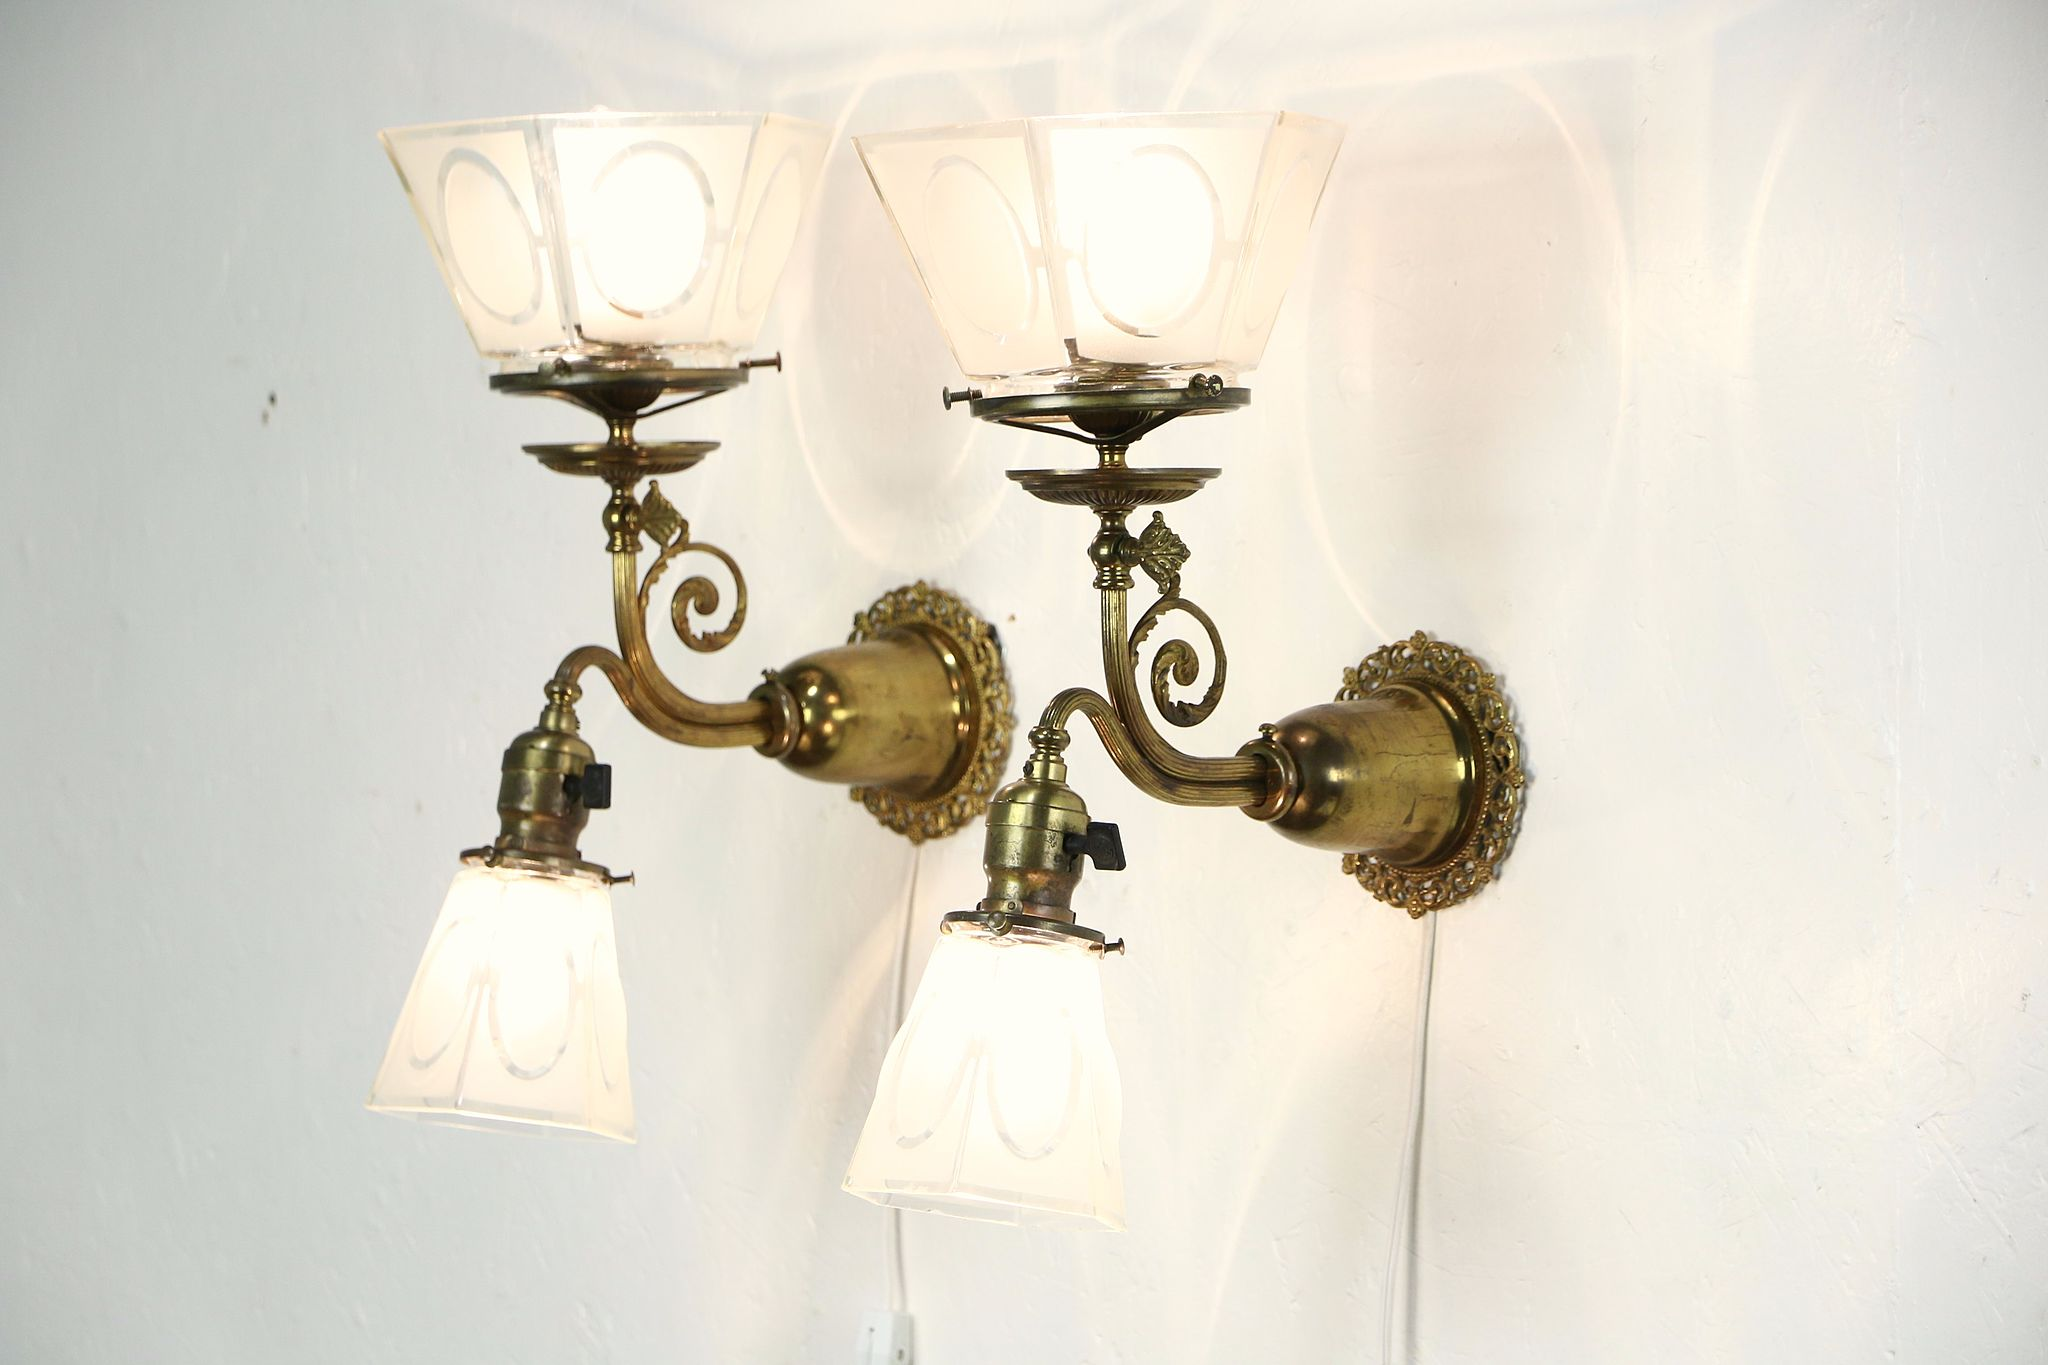 Pair Of Antique Wall Sconce Lights